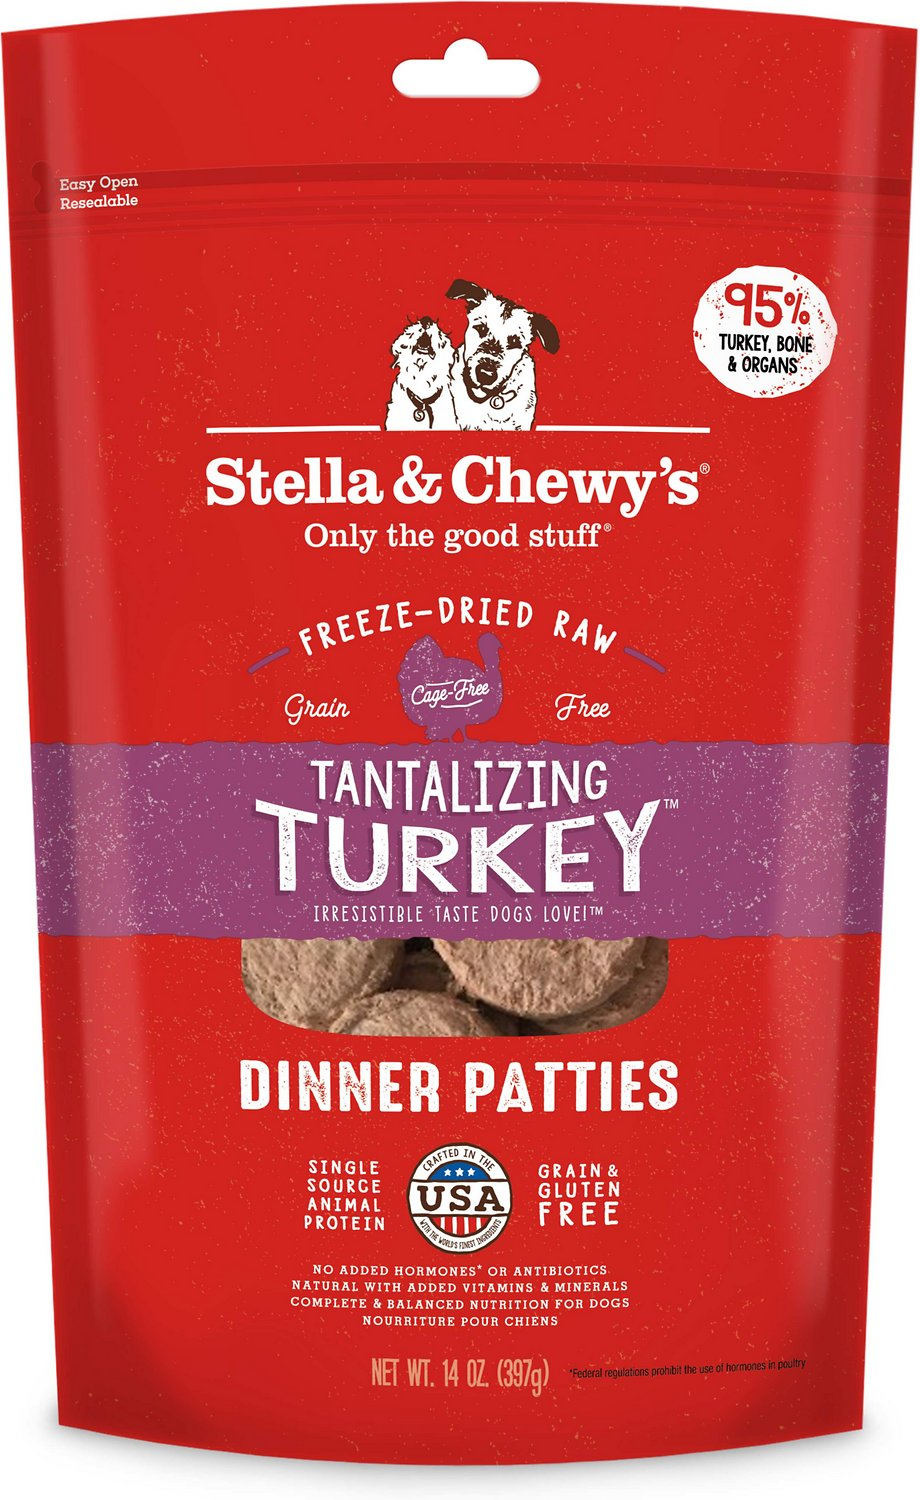 Stella & Chewy's Tantalizing Turkey Dinner Patties Grain-Free Freeze-Dried Dog Food Image